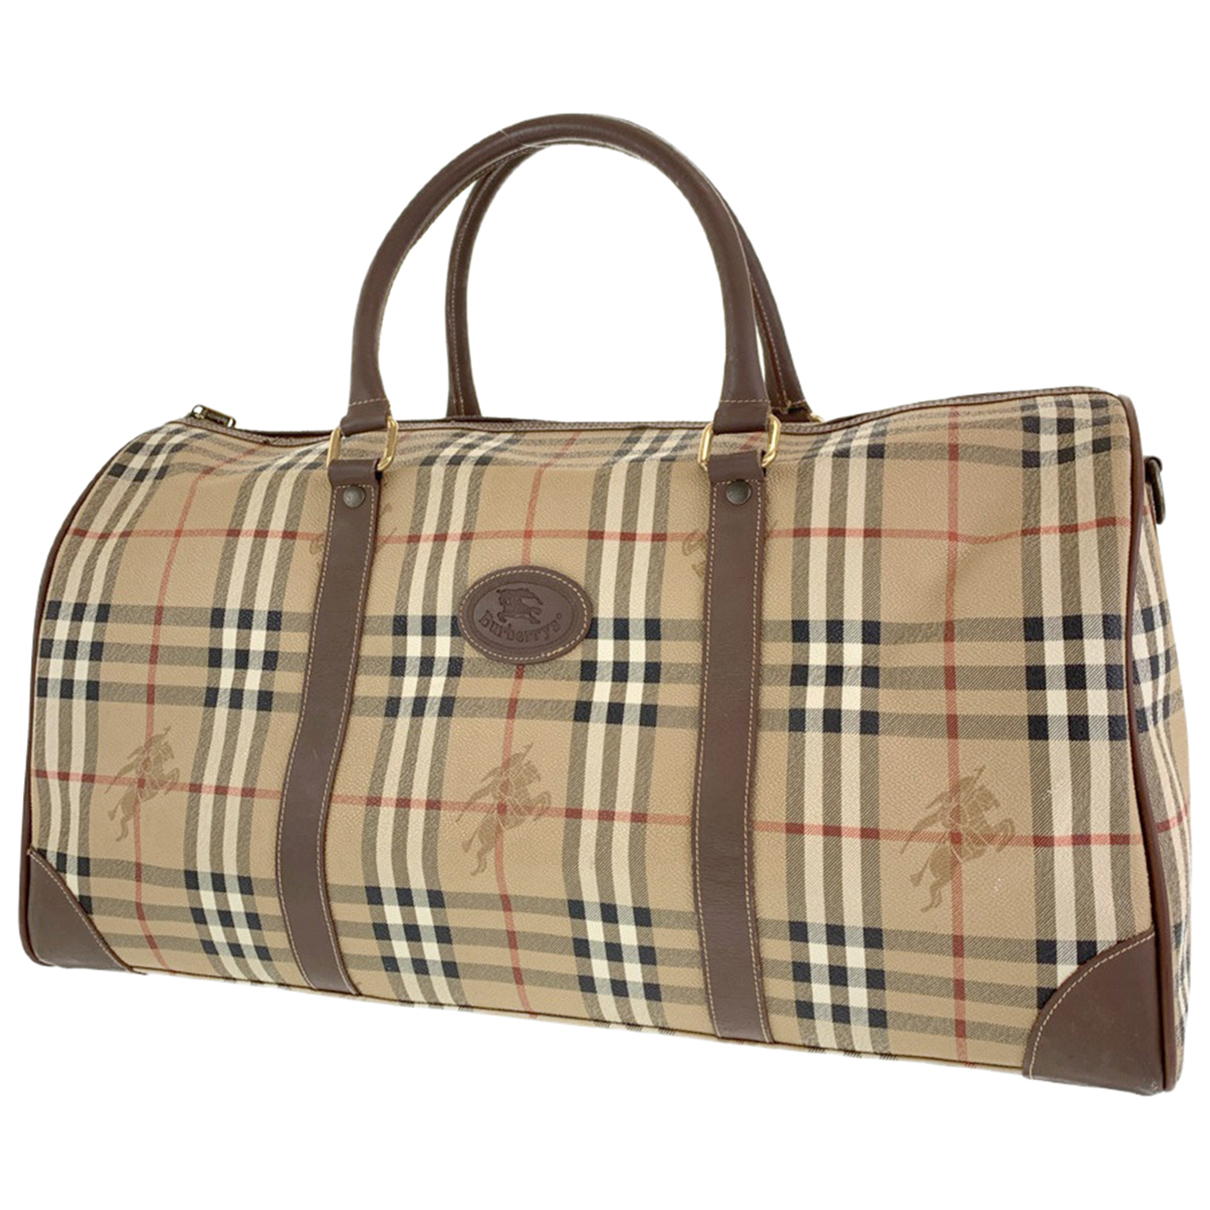 Burberry N bag for Men N